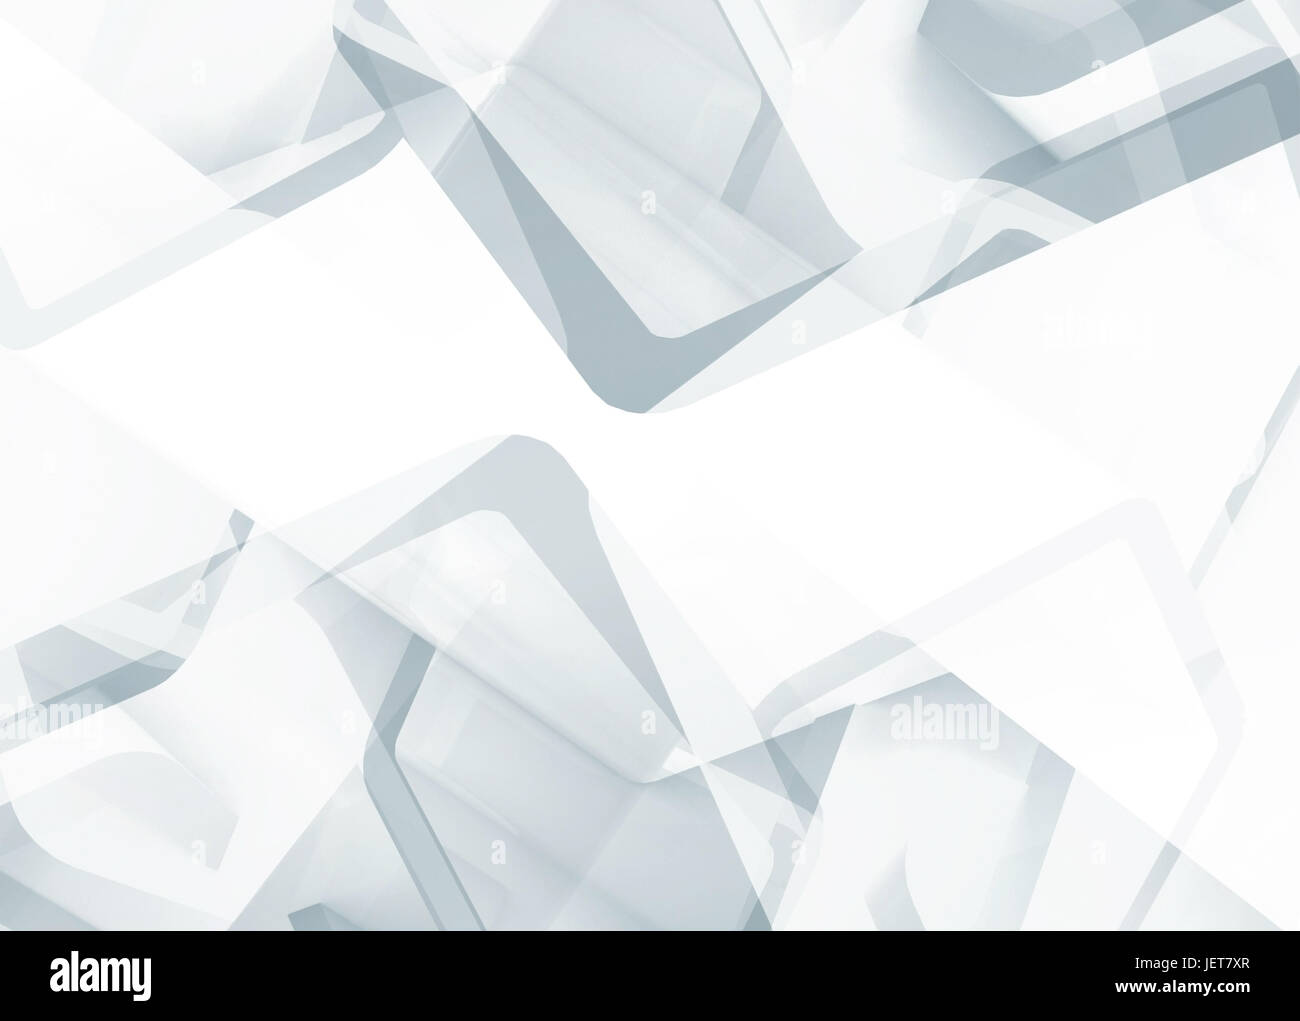 Abstract White Technology Background Useful As A Wallpaper Image 3d Render Illustration